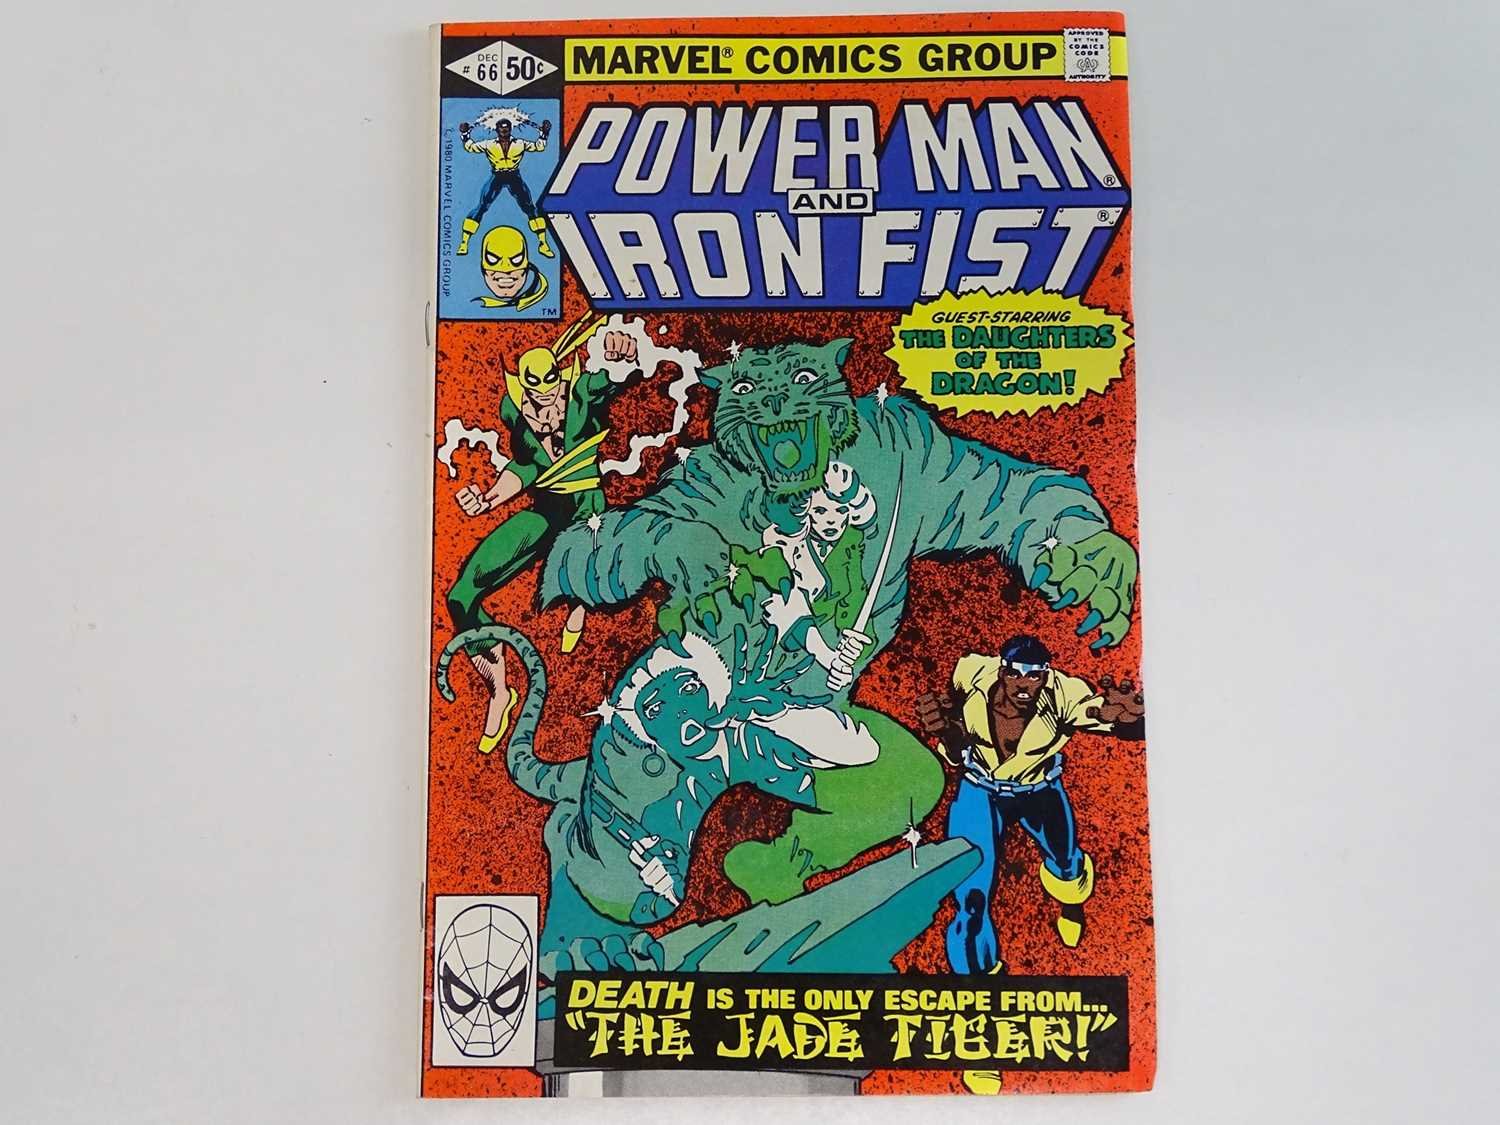 POWER MAN & IRON FIST #66 - (1980 - MARVEL) Second appearance of Sabretooth + Misty Knight,